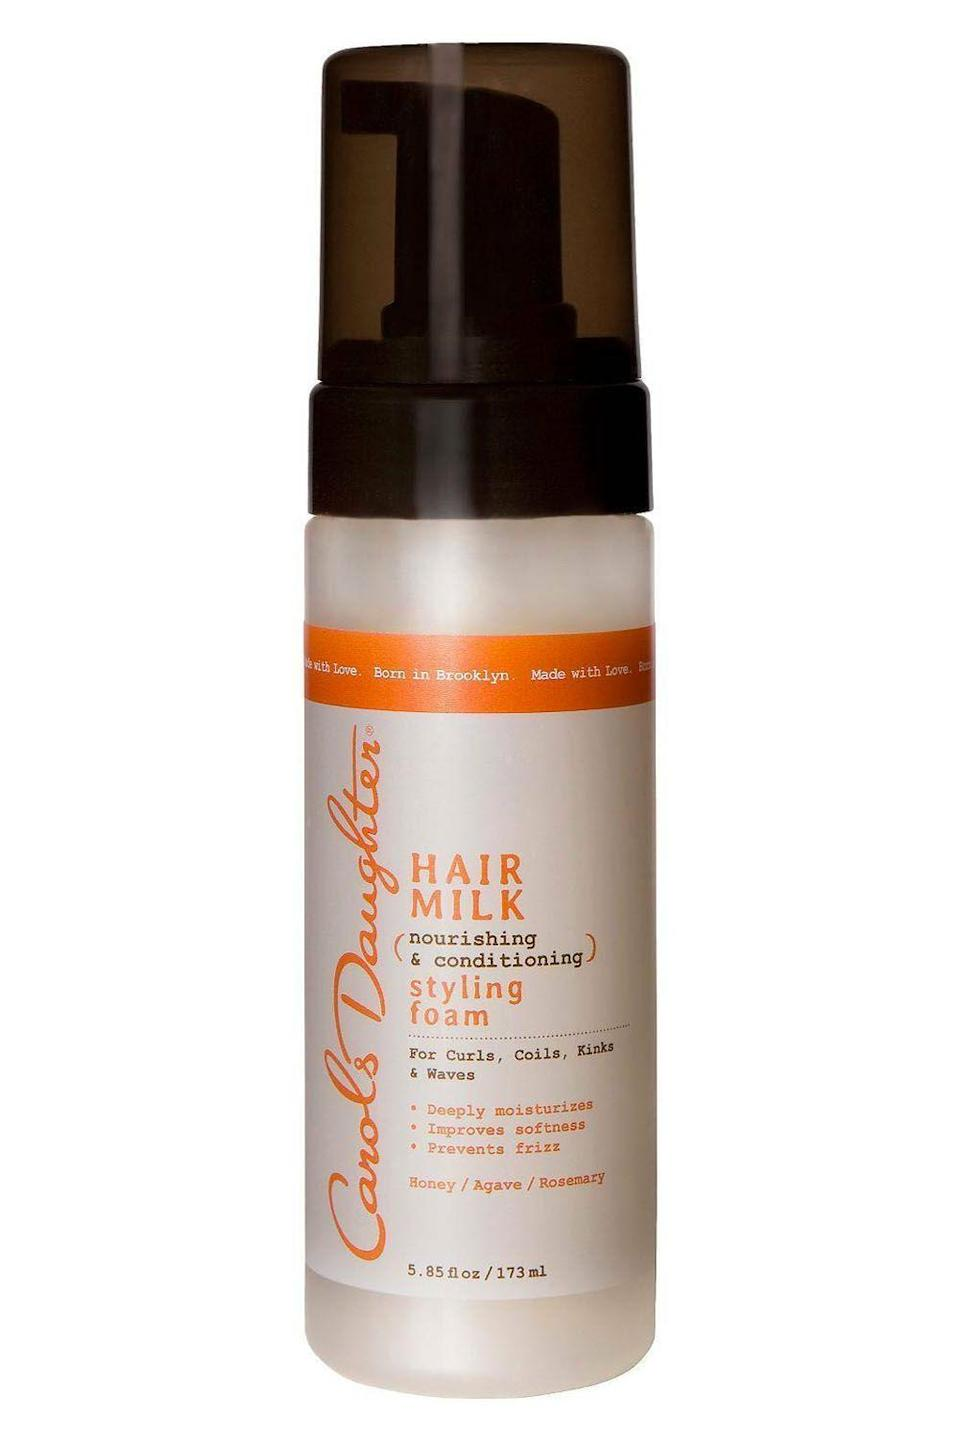 """<p><strong>Carol's Daughter</strong></p><p>target.com</p><p><strong>$12.19</strong></p><p><a href=""""https://www.target.com/p/carols-daughter-hair-milk-nourishing-and-conditioning-styling-foam-5-85-oz/-/A-15041866"""" rel=""""nofollow noopener"""" target=""""_blank"""" data-ylk=""""slk:Shop Now"""" class=""""link rapid-noclick-resp"""">Shop Now</a></p><p>If you have tighter curls, you know how hard it can be to find a mousse that won't make your hair stiff as hell. Enter: this <a href=""""https://www.cosmopolitan.com/style-beauty/beauty/g27345497/best-leave-in-conditioners-curly-hair/"""" rel=""""nofollow noopener"""" target=""""_blank"""" data-ylk=""""slk:conditioning"""" class=""""link rapid-noclick-resp"""">conditioning</a> foam. The formula <strong>contains honey extract, which gives it a flexible, nonsticky hold</strong>. Rub two to three pumps of mousse between your palms, then finger-comb it through your hair for defined curls that won't flake.</p>"""